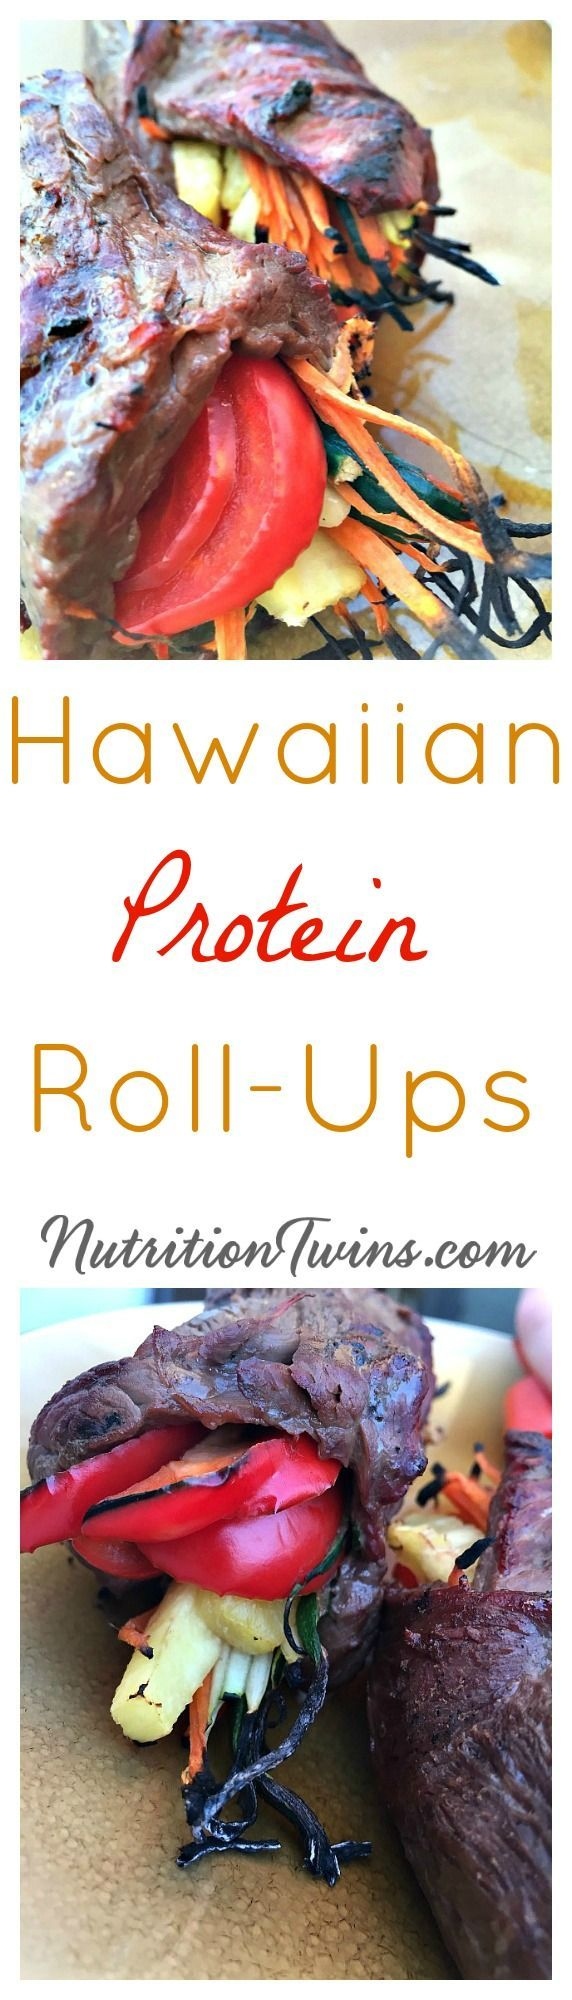 Protein Roll Ups Hawaiian Protein Roll-Ups | Only 177 Calories | Lean & Grilled Great way to get Veggies | Super Satiating 22 g protein |For MORE RECIPES, Fitness & Nutrition Tips please SIGN UP for our FREE NEWSLETTER Hawaiian Protein Roll-Ups | Only 177 Calories | Lean & Grilled Great way to get Veggies | Super Satiating 22 g pro...